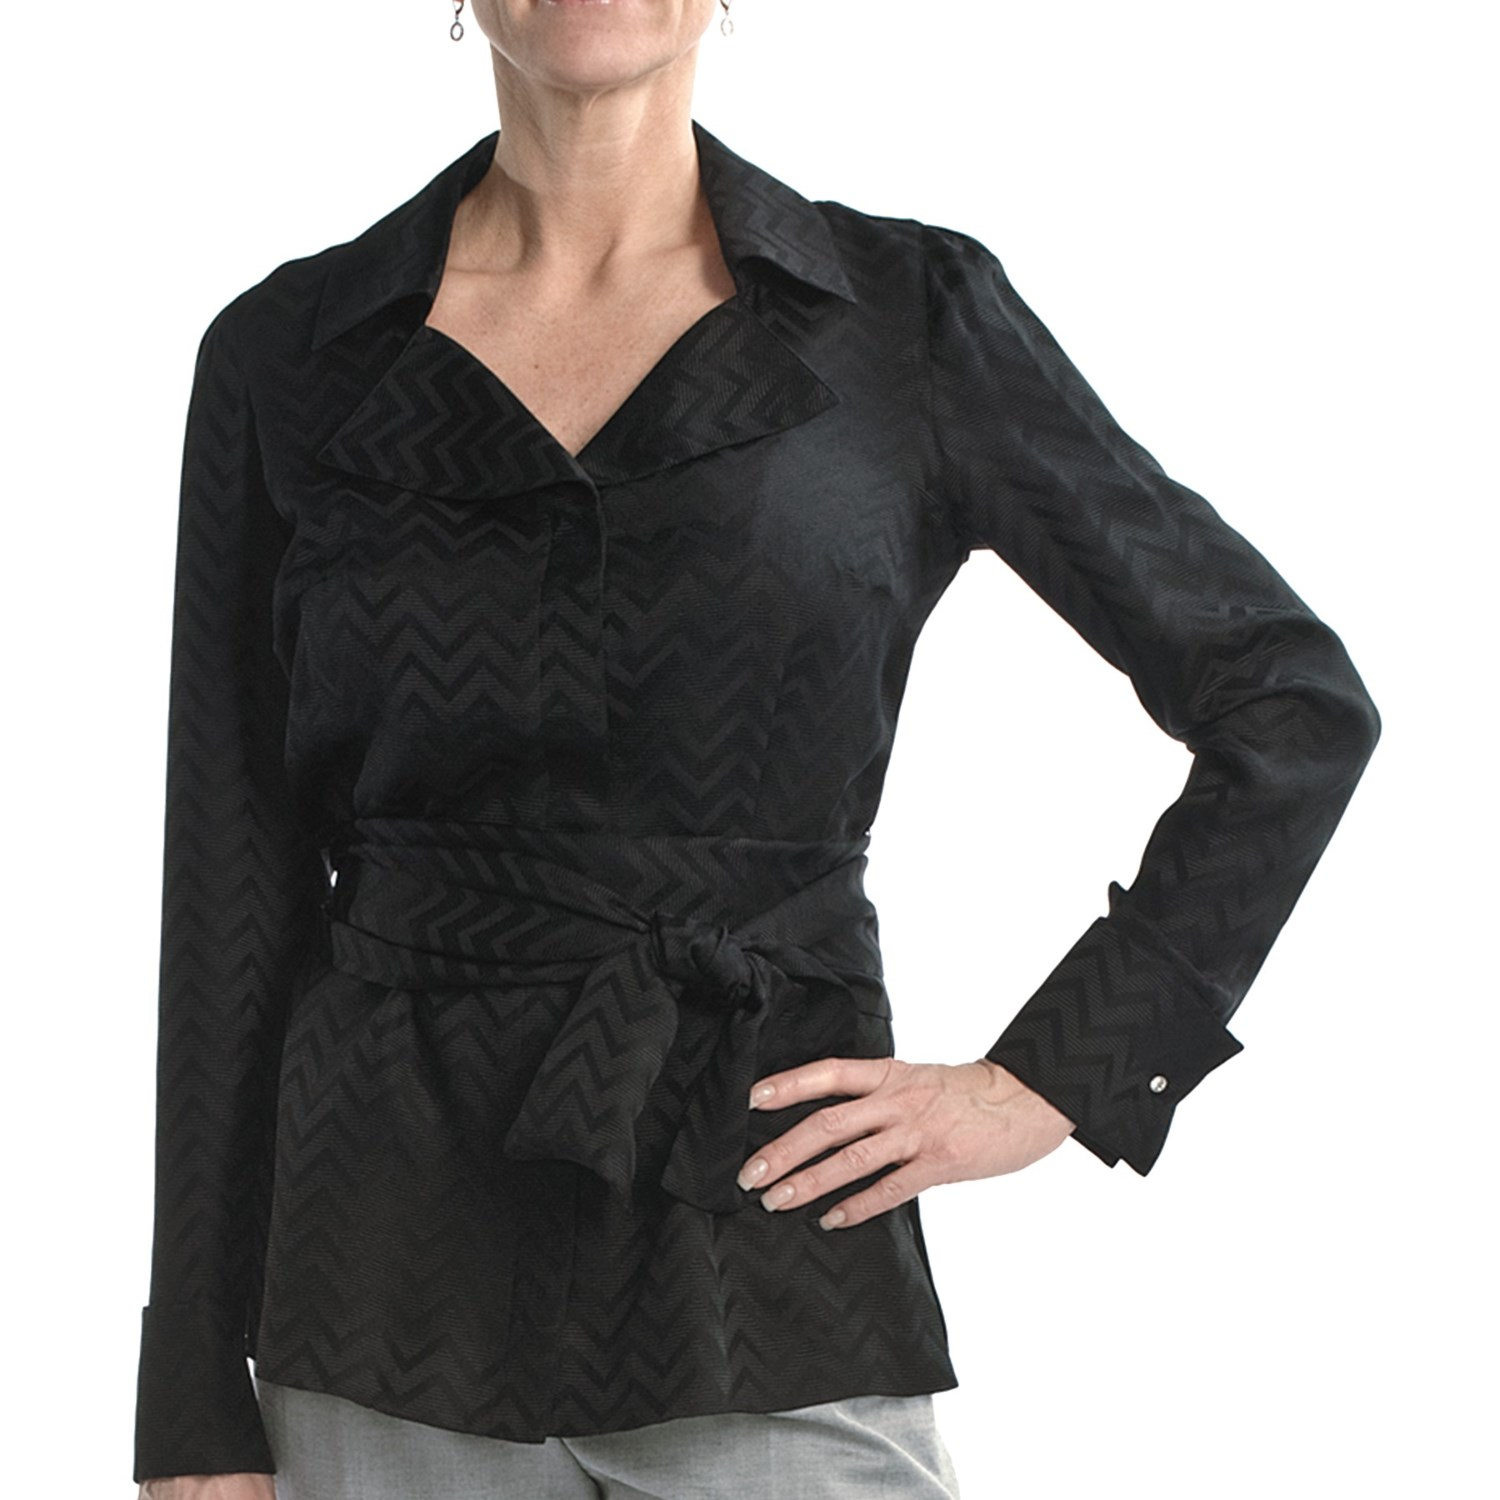 Black Dress Shirts For Women Images & Pictures - Becuo